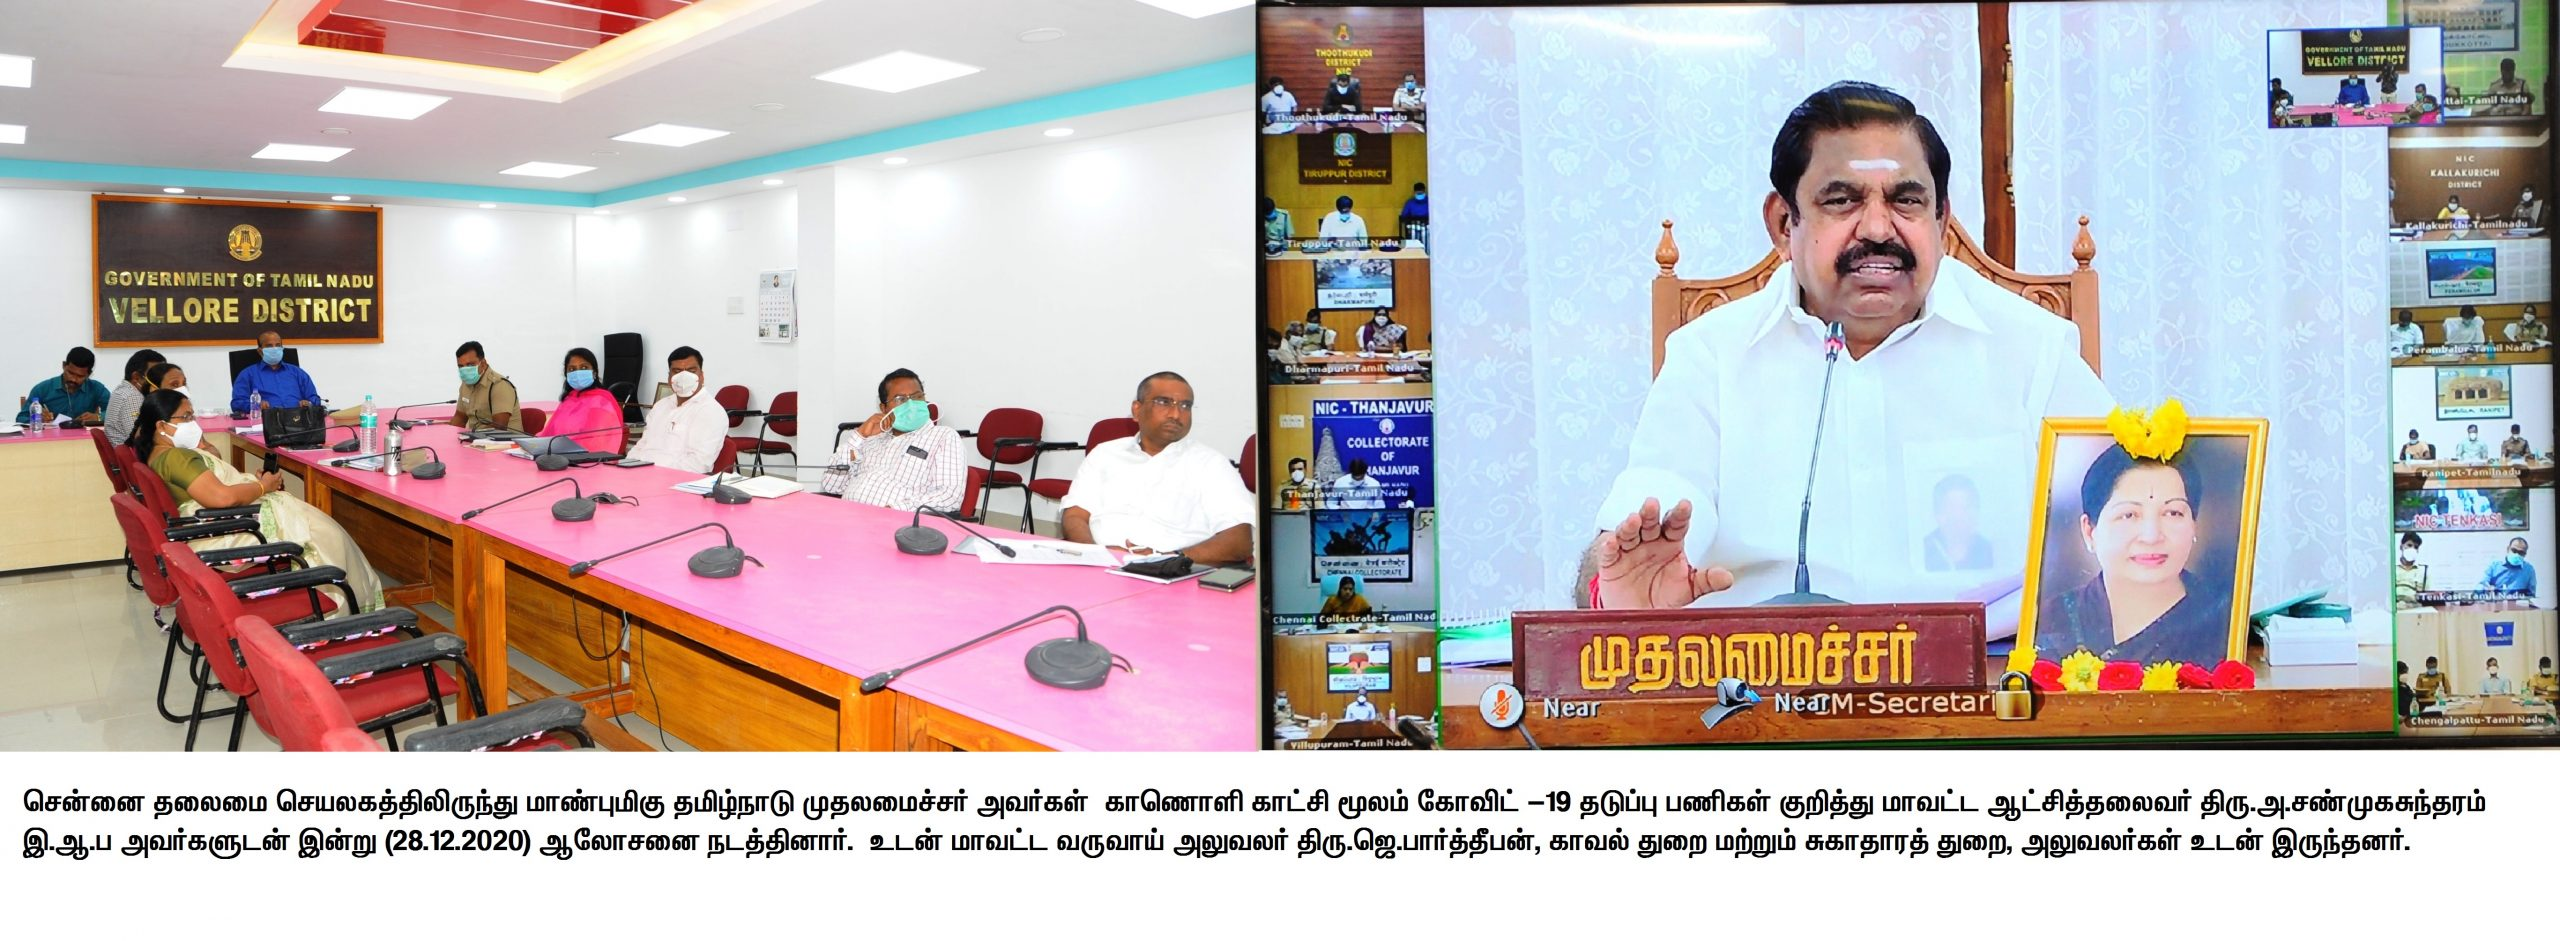 Corona Virus Preventive Methods Discussion through Video conference With Honorable Chief Minister Edapadi K.Palanisami 28-12-2020